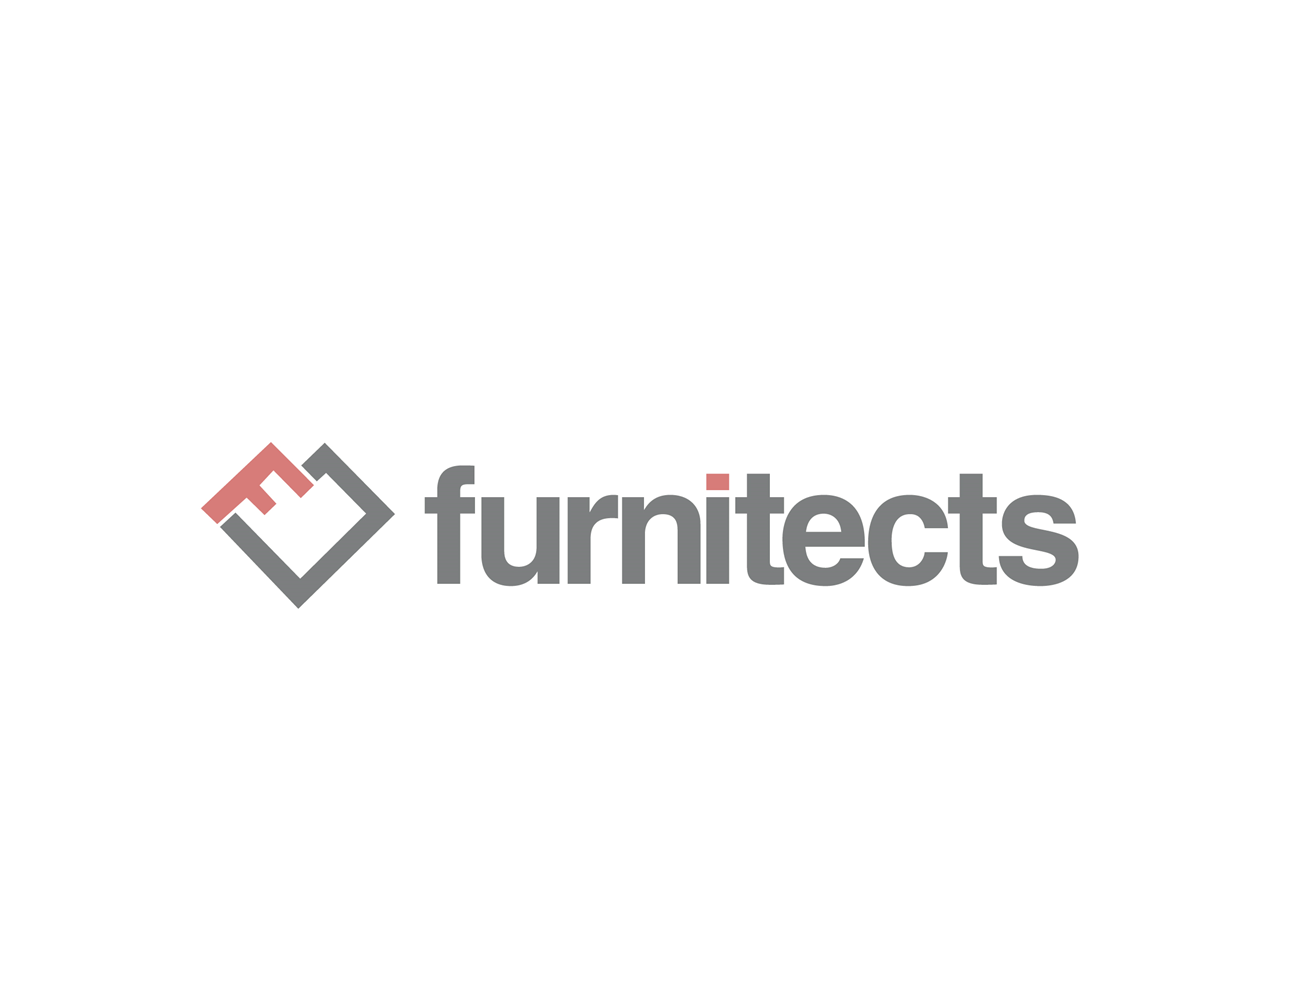 Furnitects